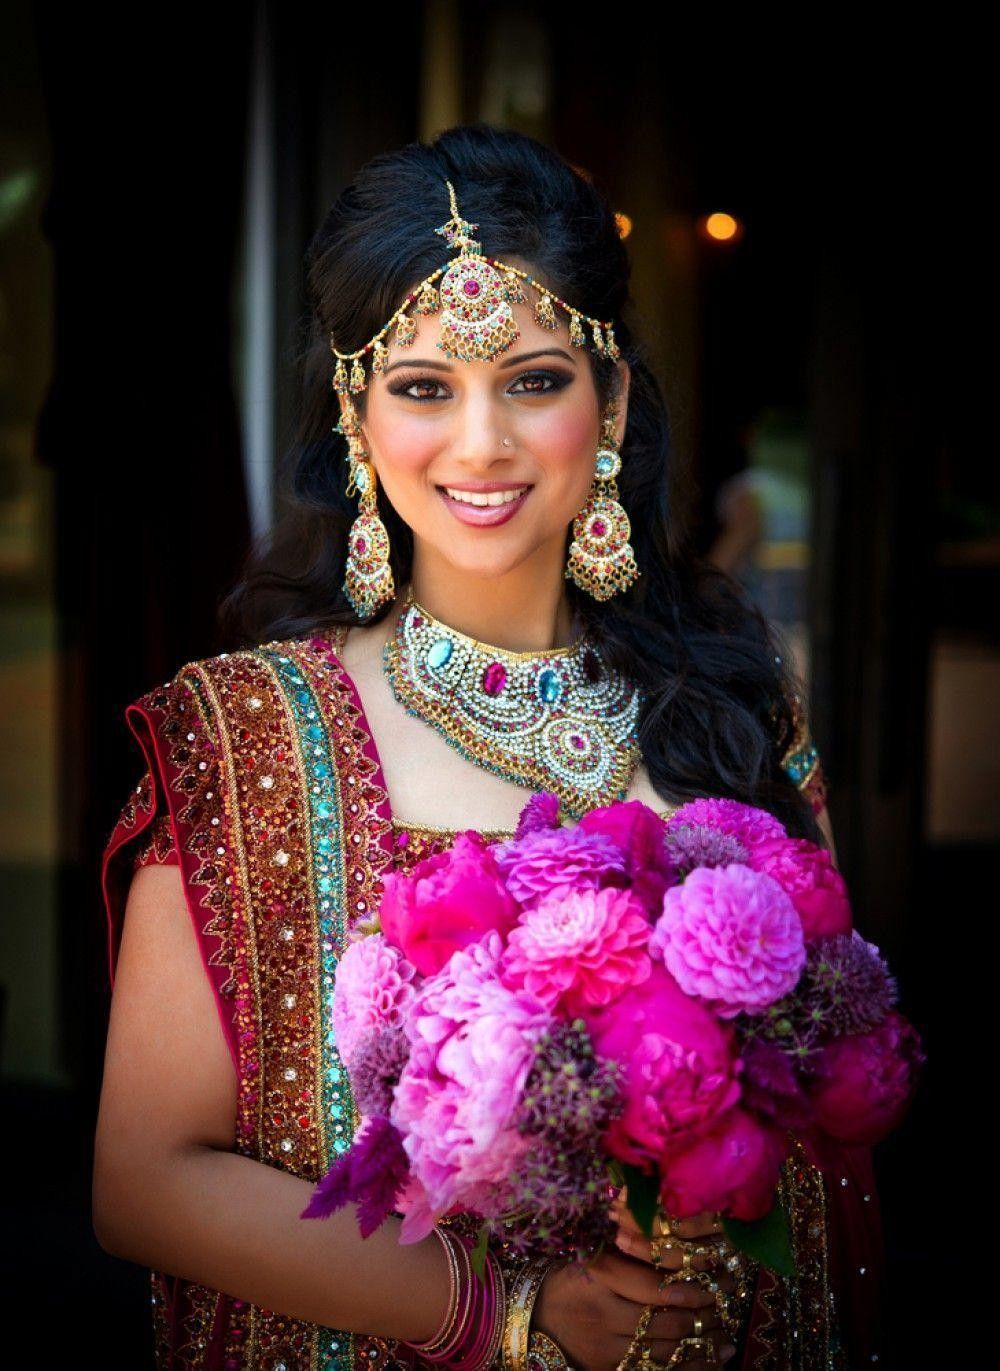 Indian bride with a pink bouquet